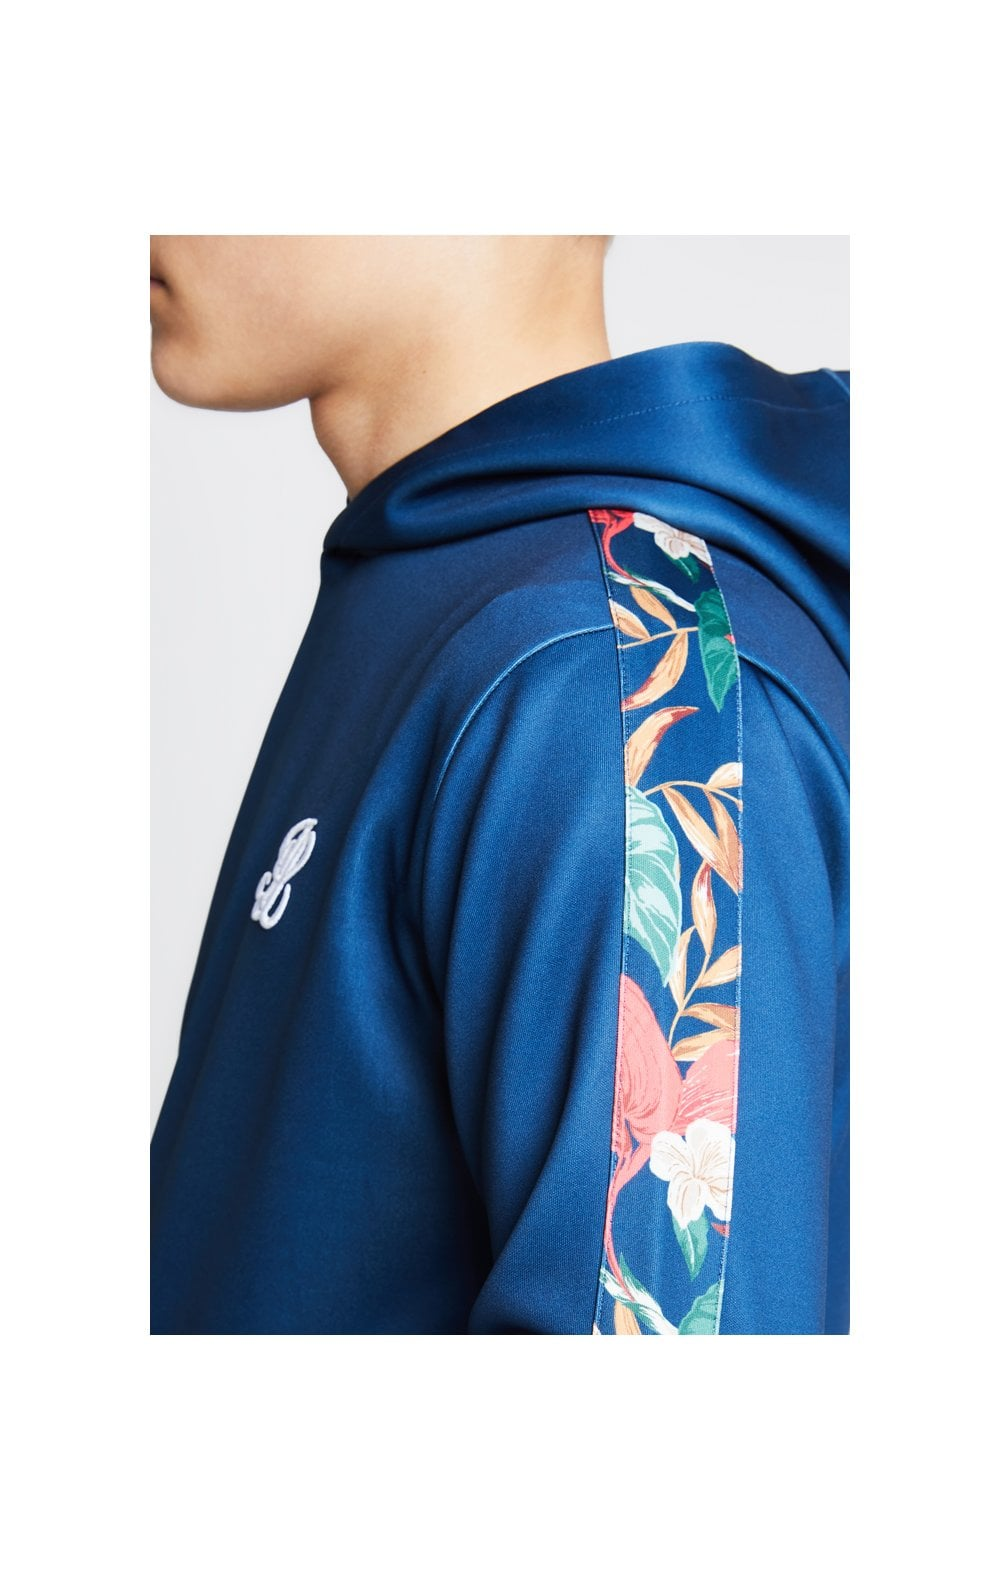 Illusive London Panelled Overhead Hoodie - Teal & Tropical Leaf (1)